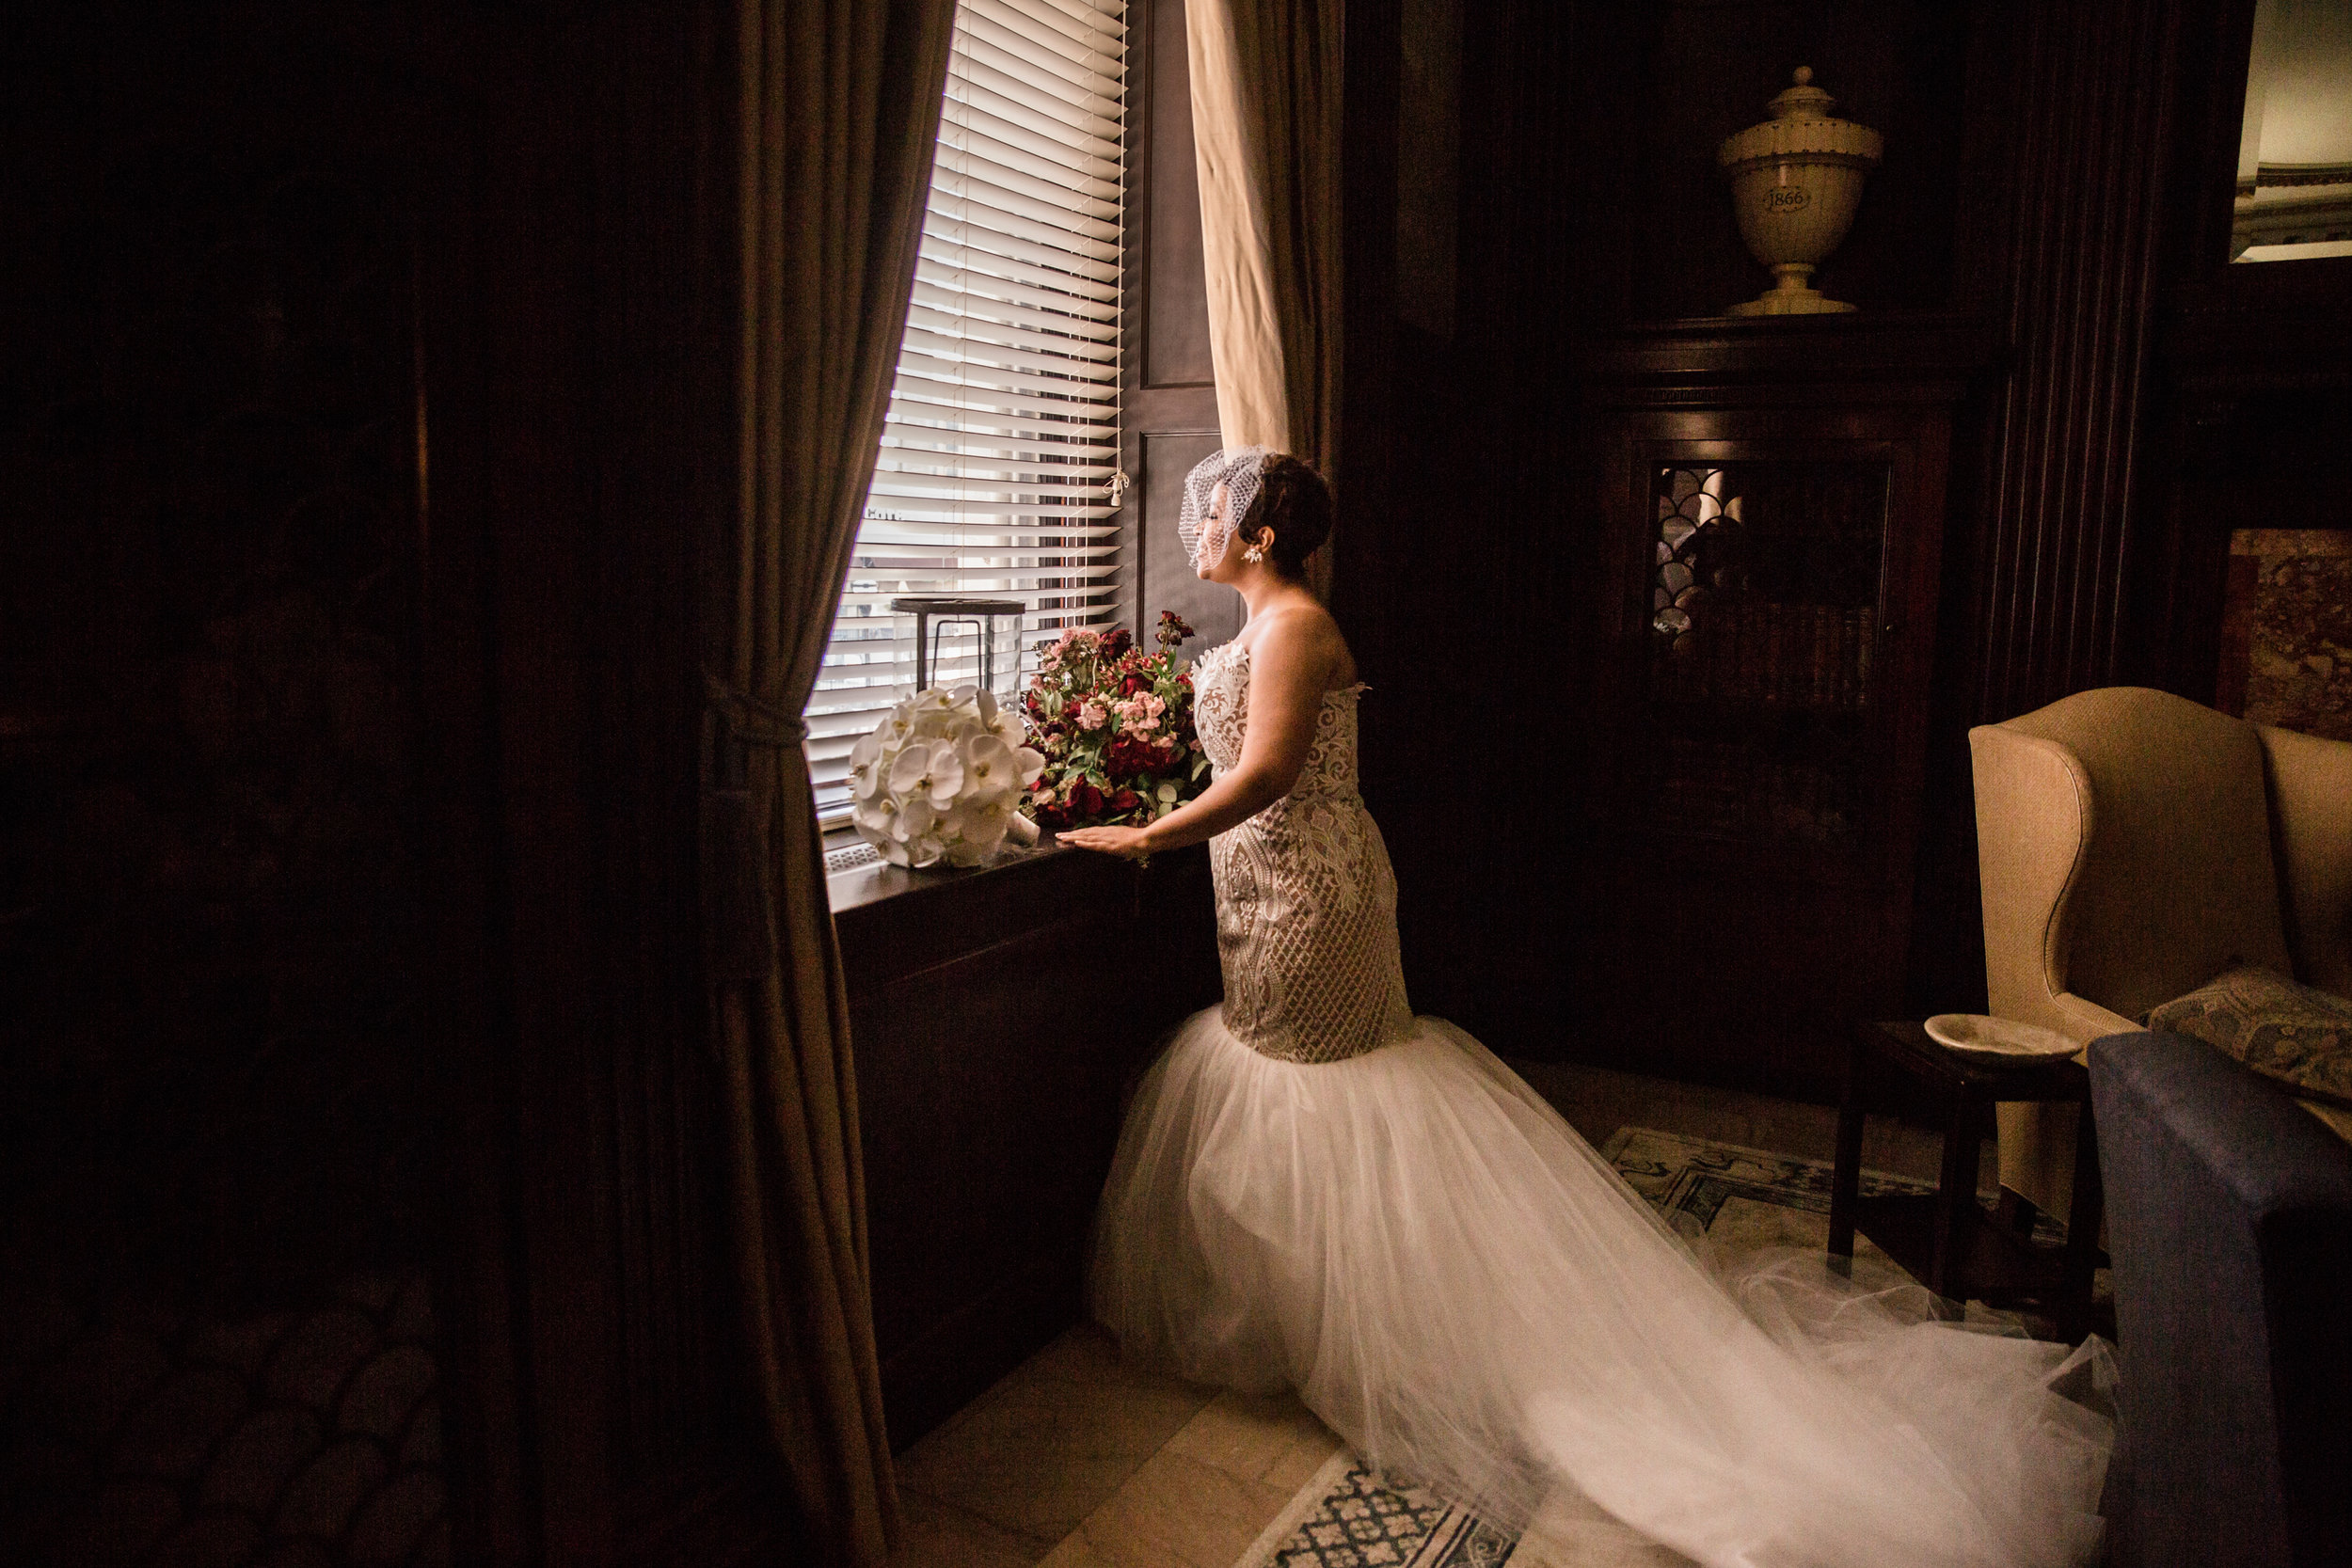 Best Classic Black Bride at The Grand Baltimore Maryland Husband and Wife Wedding Photographers Megapixels Media (33 of 98).jpg